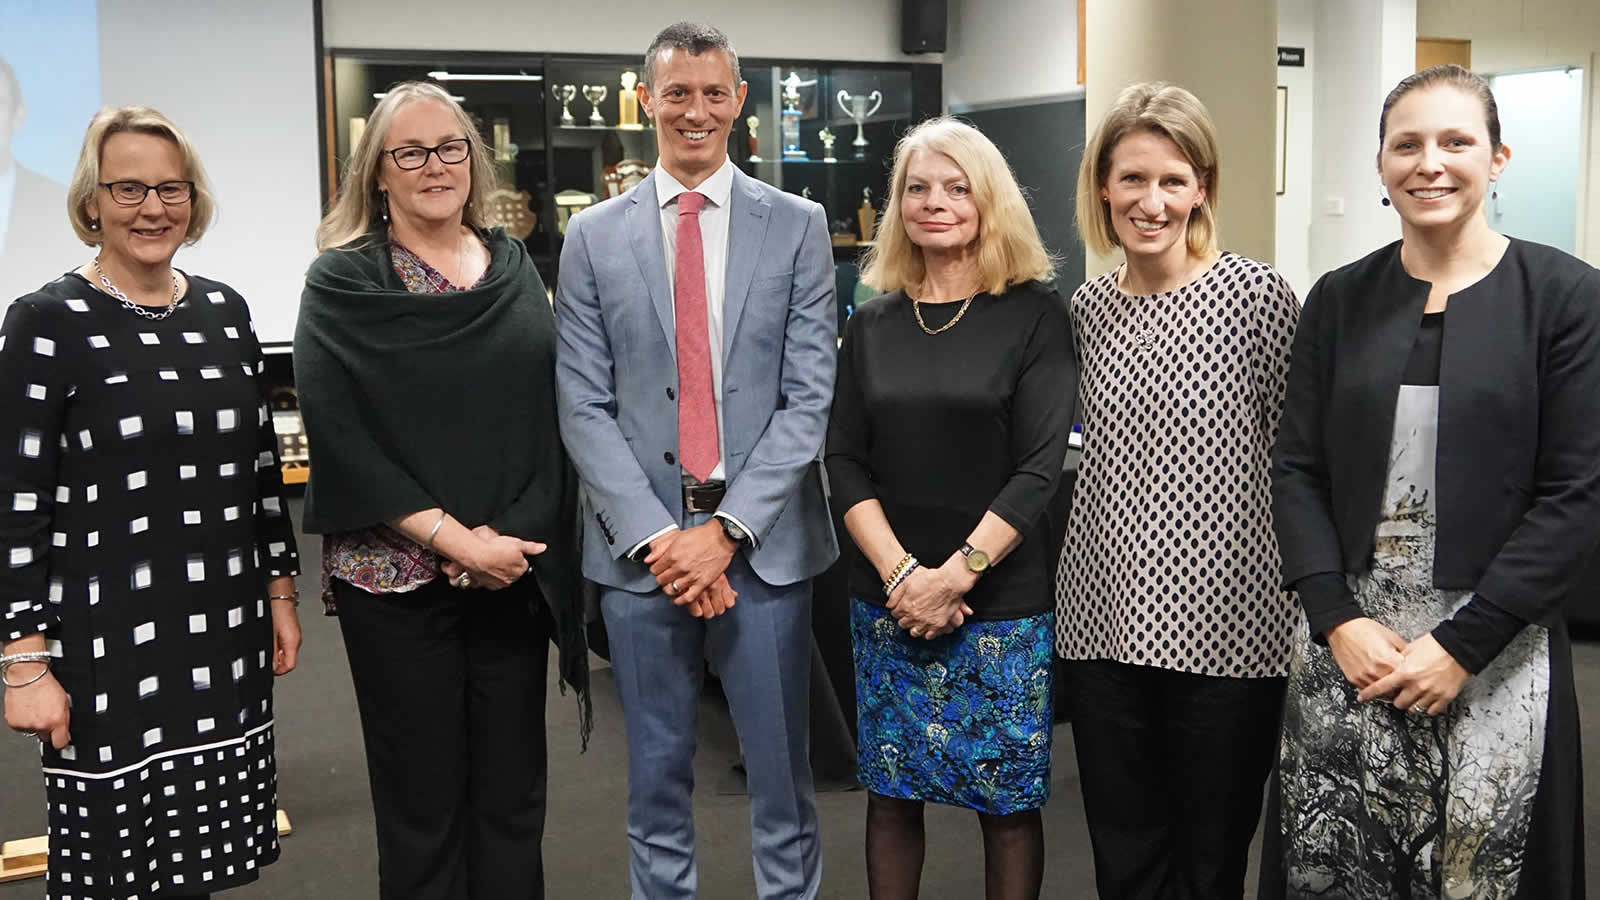 Mrs Susan Hall, Ms Leanne Weeks, Mr Matt Groves, Mrs Lee Burman, Mrs Sarah Fielding and Mrs Bec Terry. Absent Mr Ken Kingston, Mr Scott Cashion and Mr Cameron Hudson.